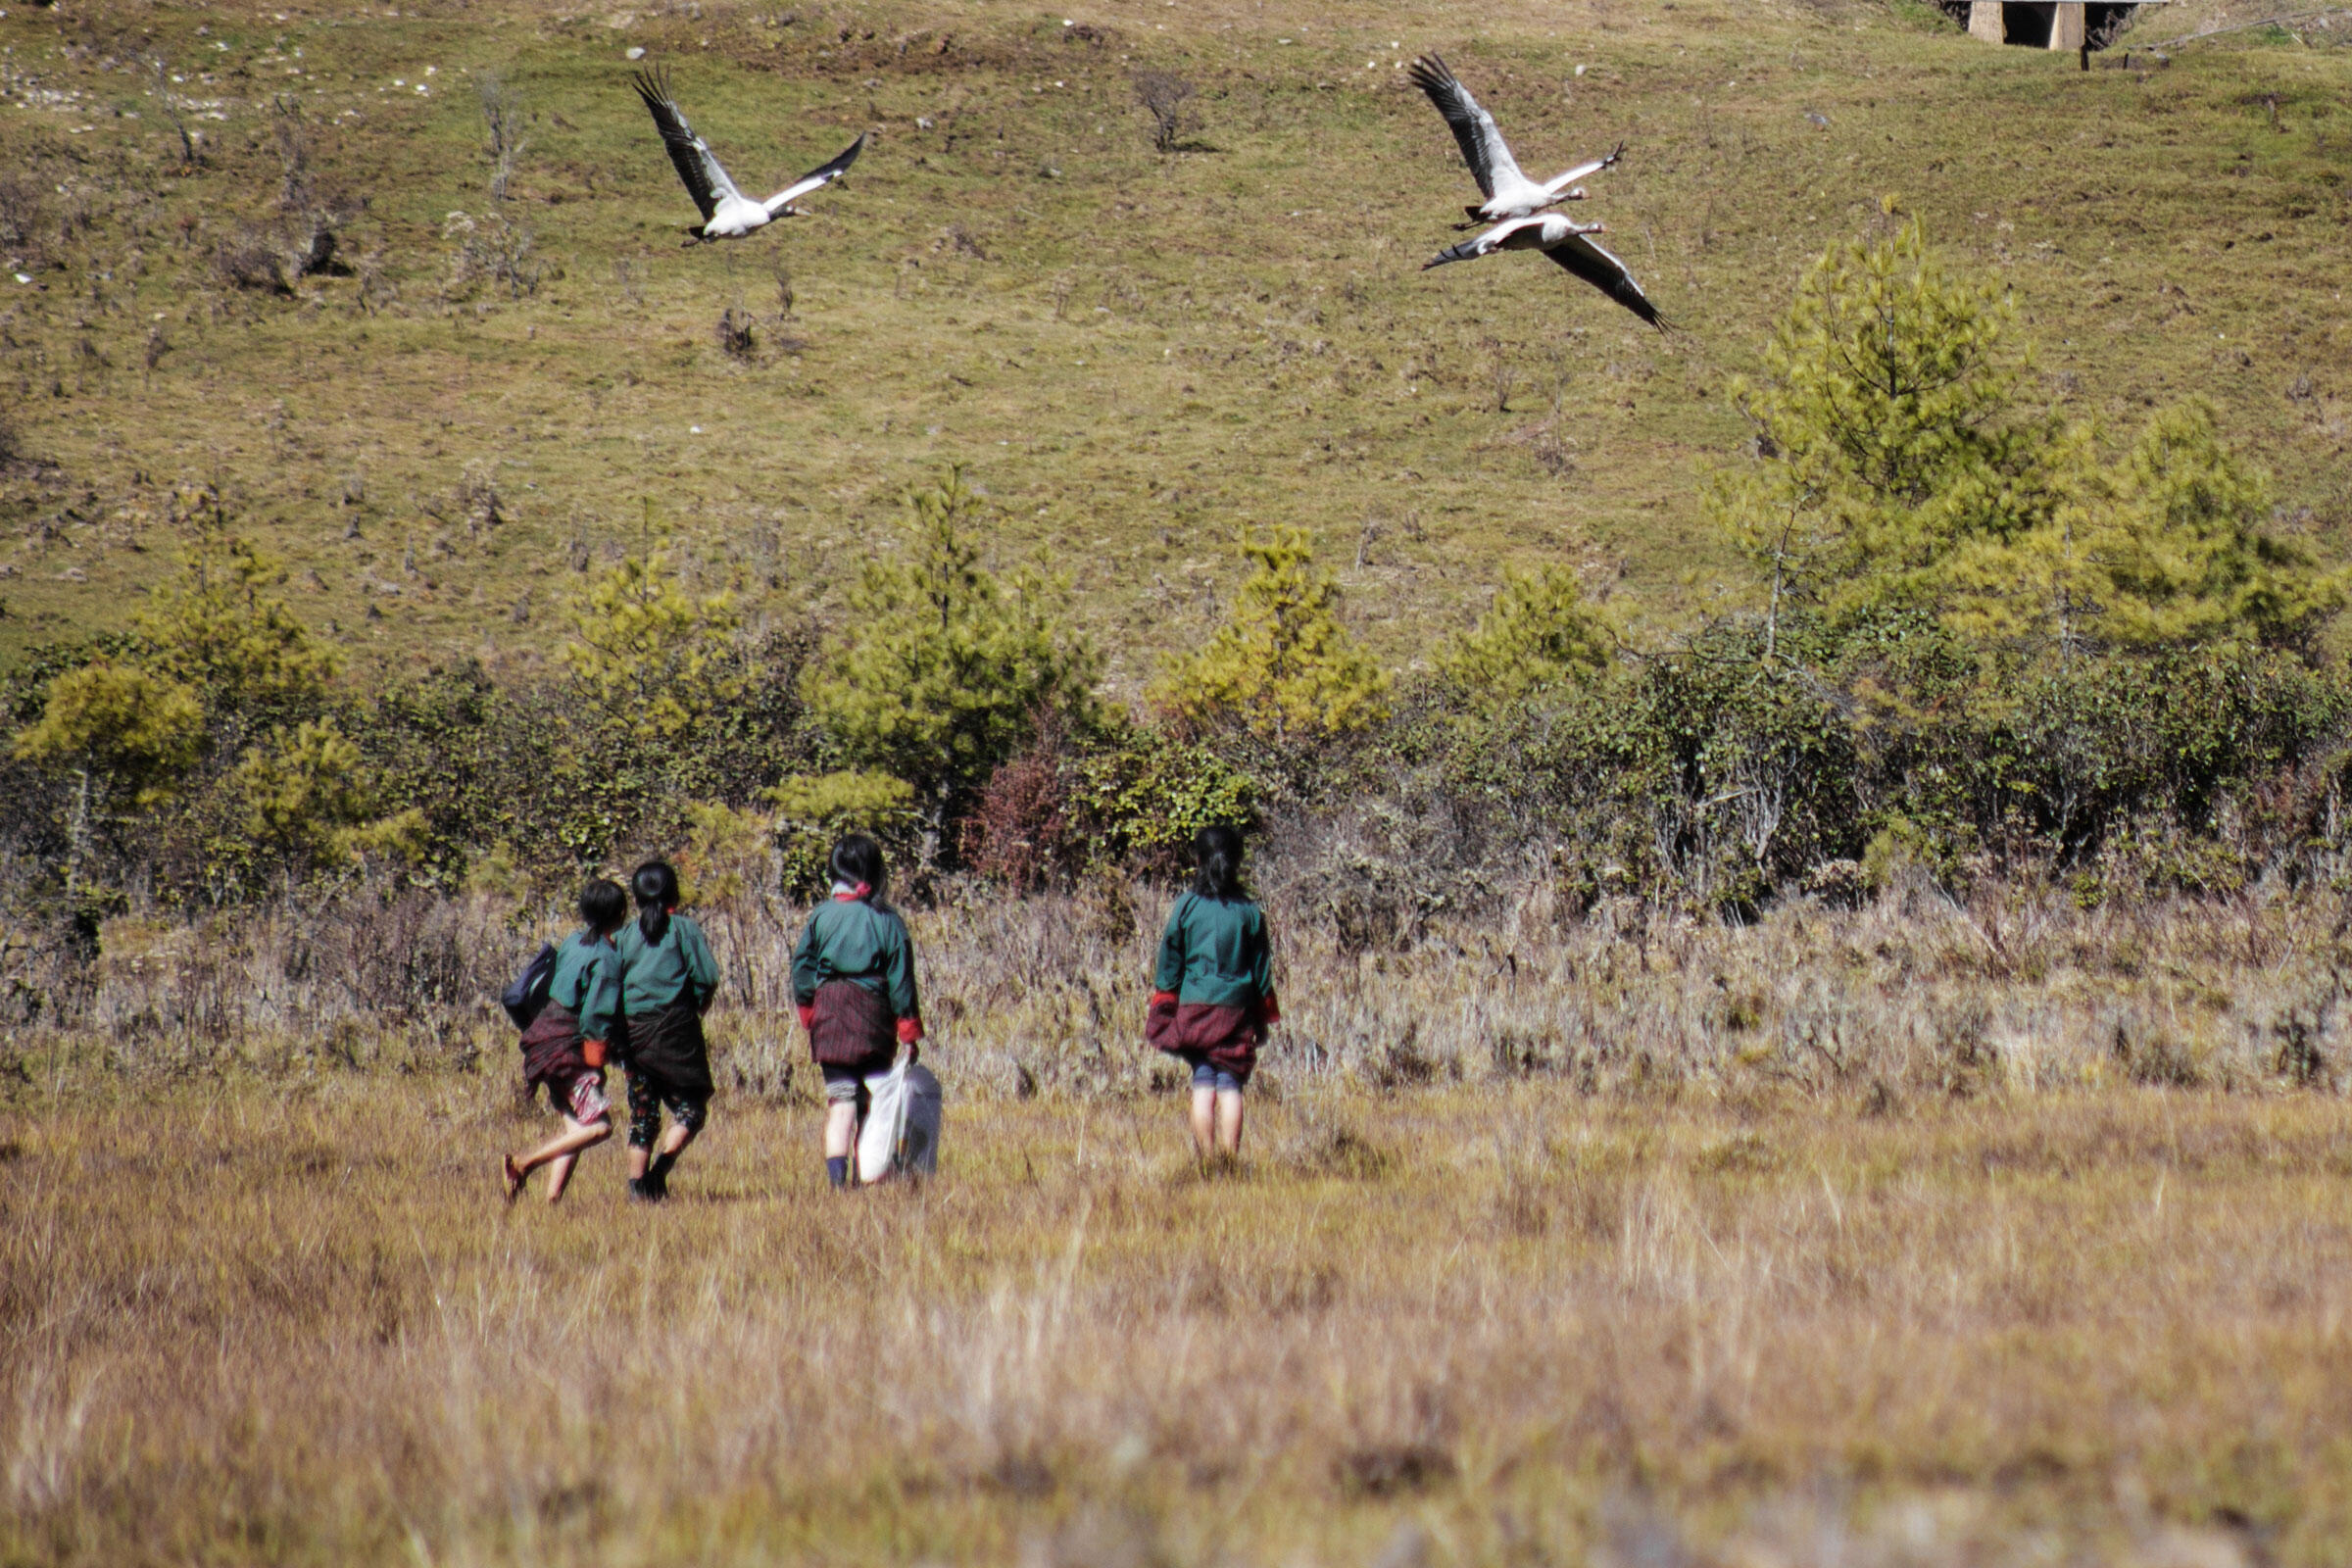 Local schoolchildren on their way home pass through one of the smaller roosting areas. These wetlands are not part of the main feeding ground and represent the maximum amount of interaction between the locals and birds. Ambika Singh